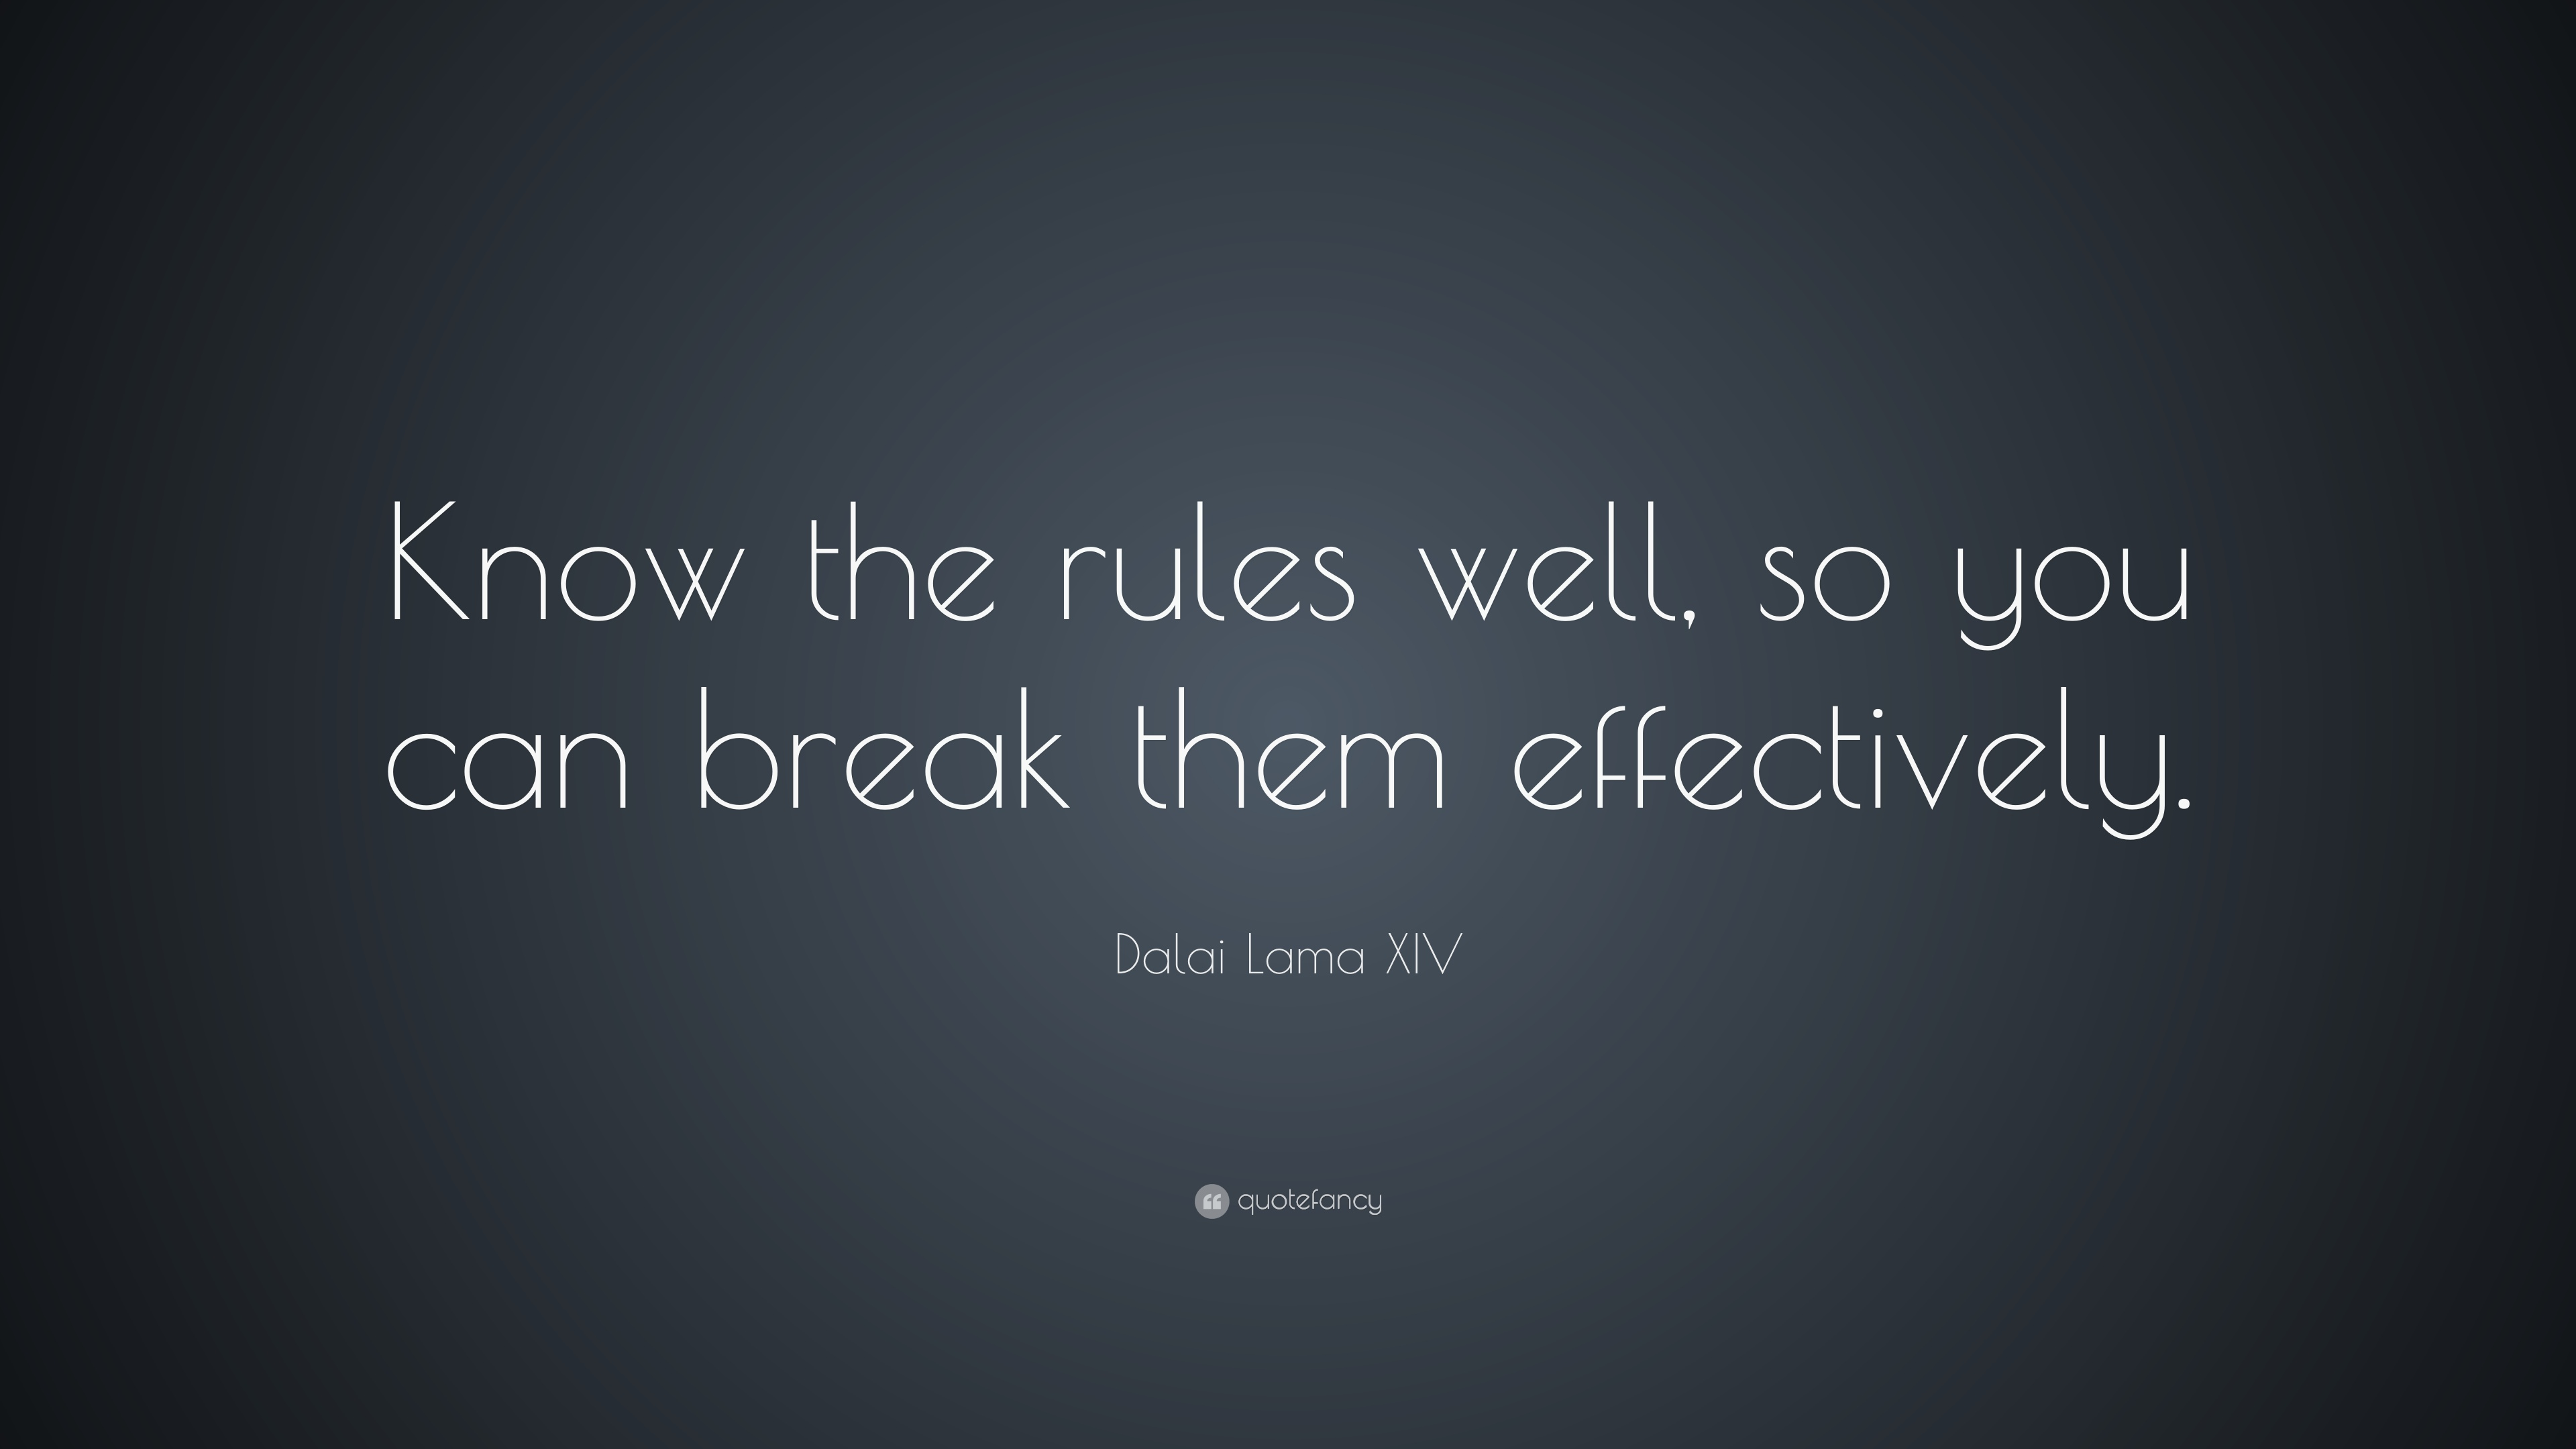 Dalai Lama Xiv Quote Know The Rules Well So You Can Break Them